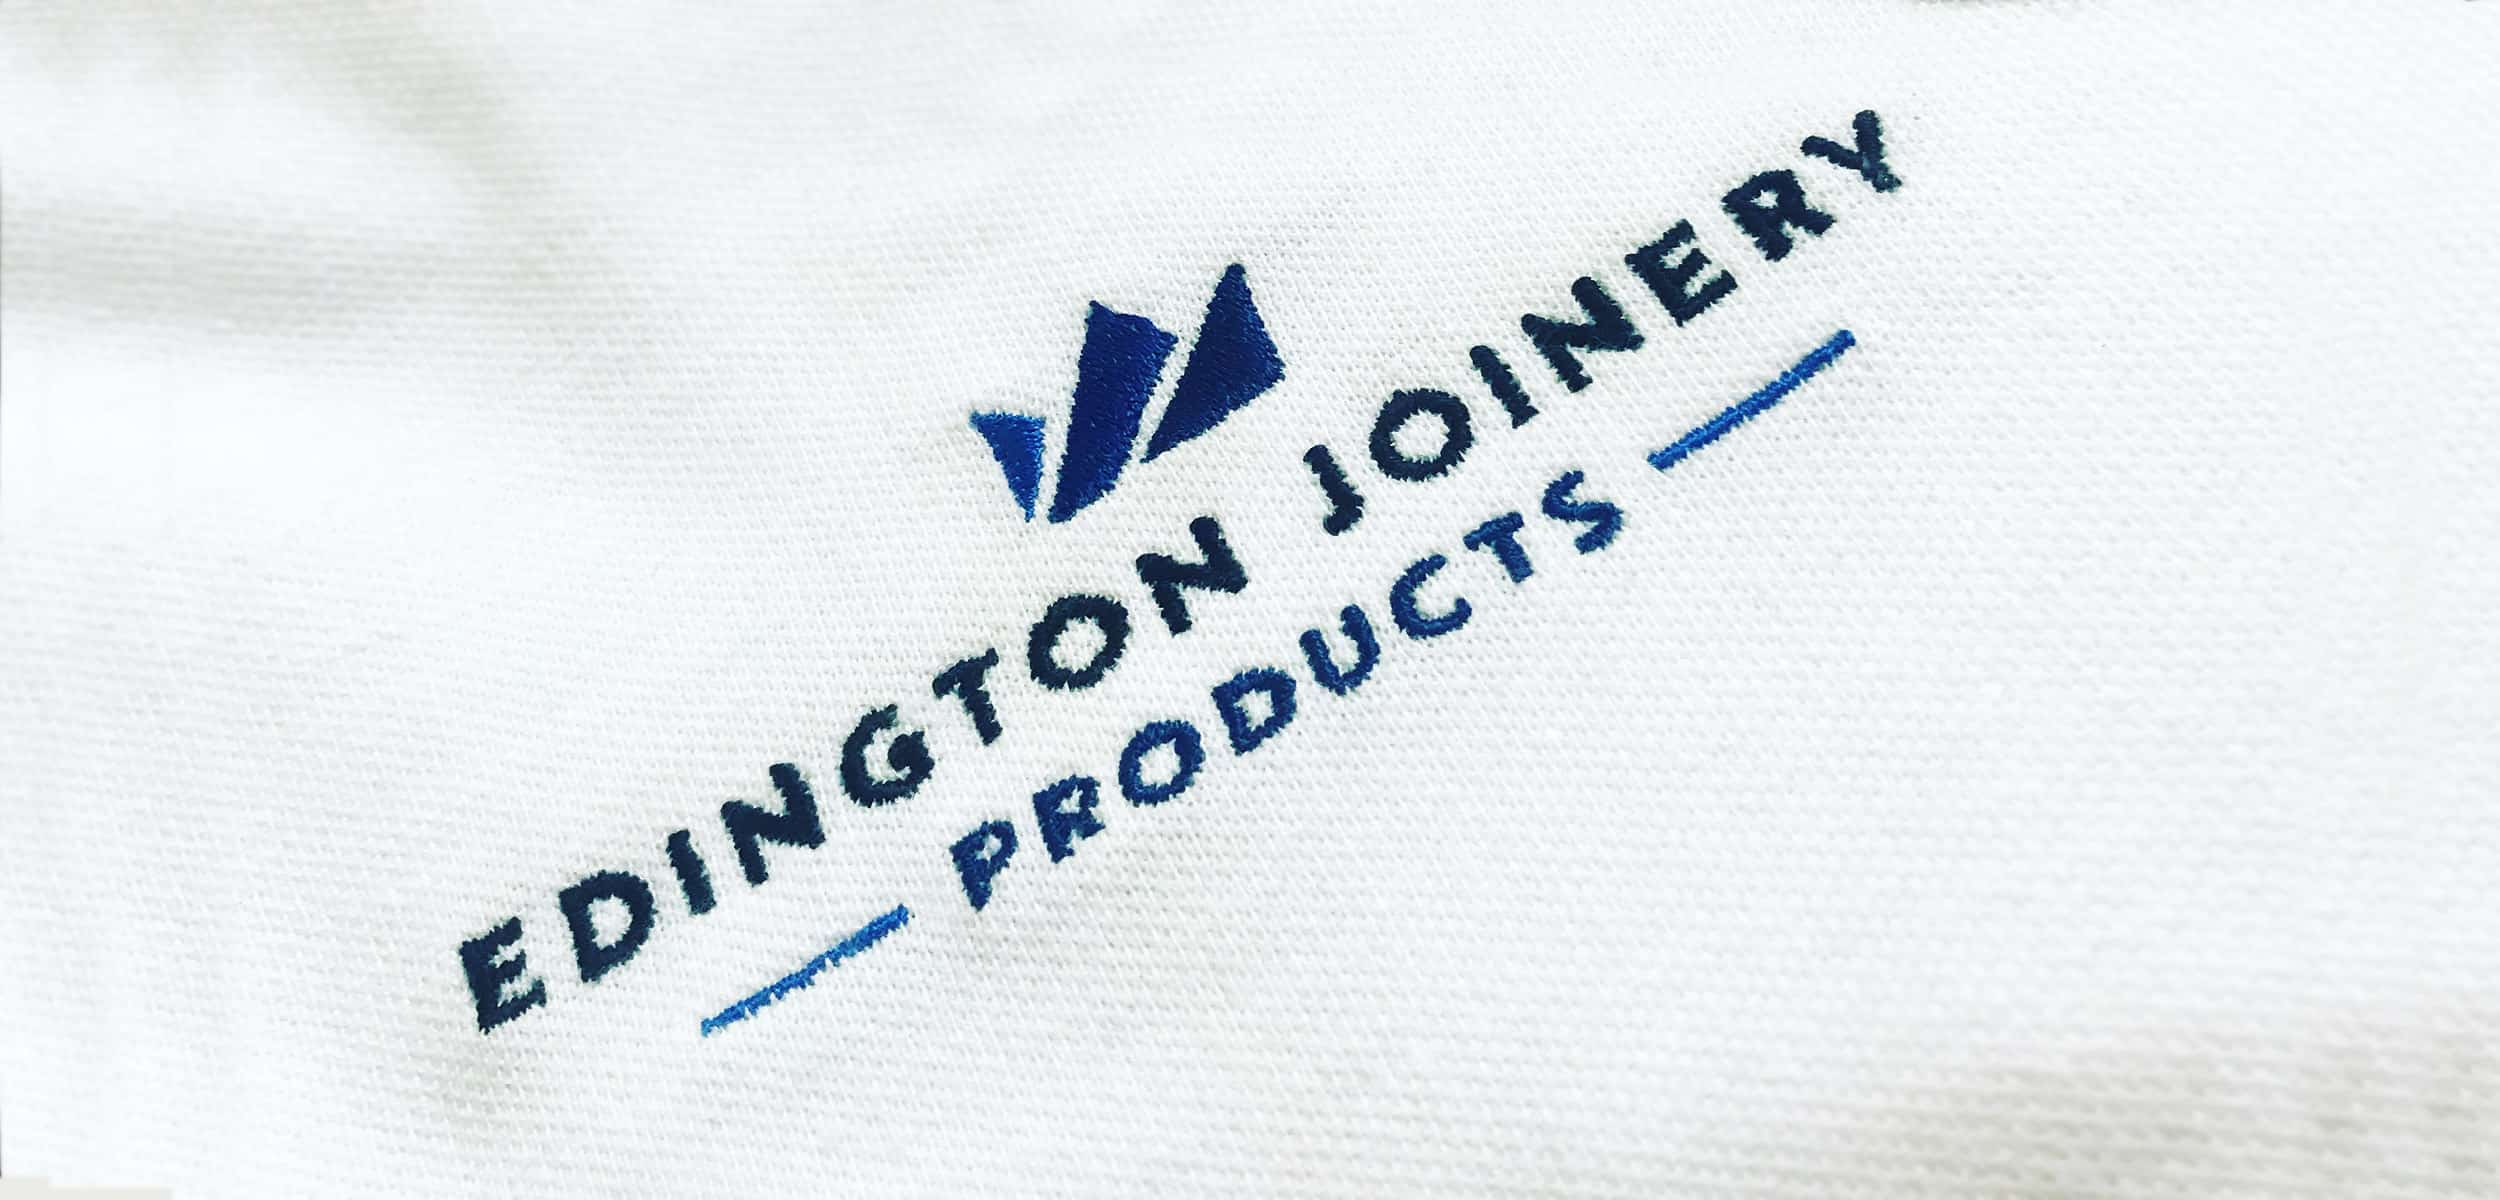 Edington Joinery Clothing